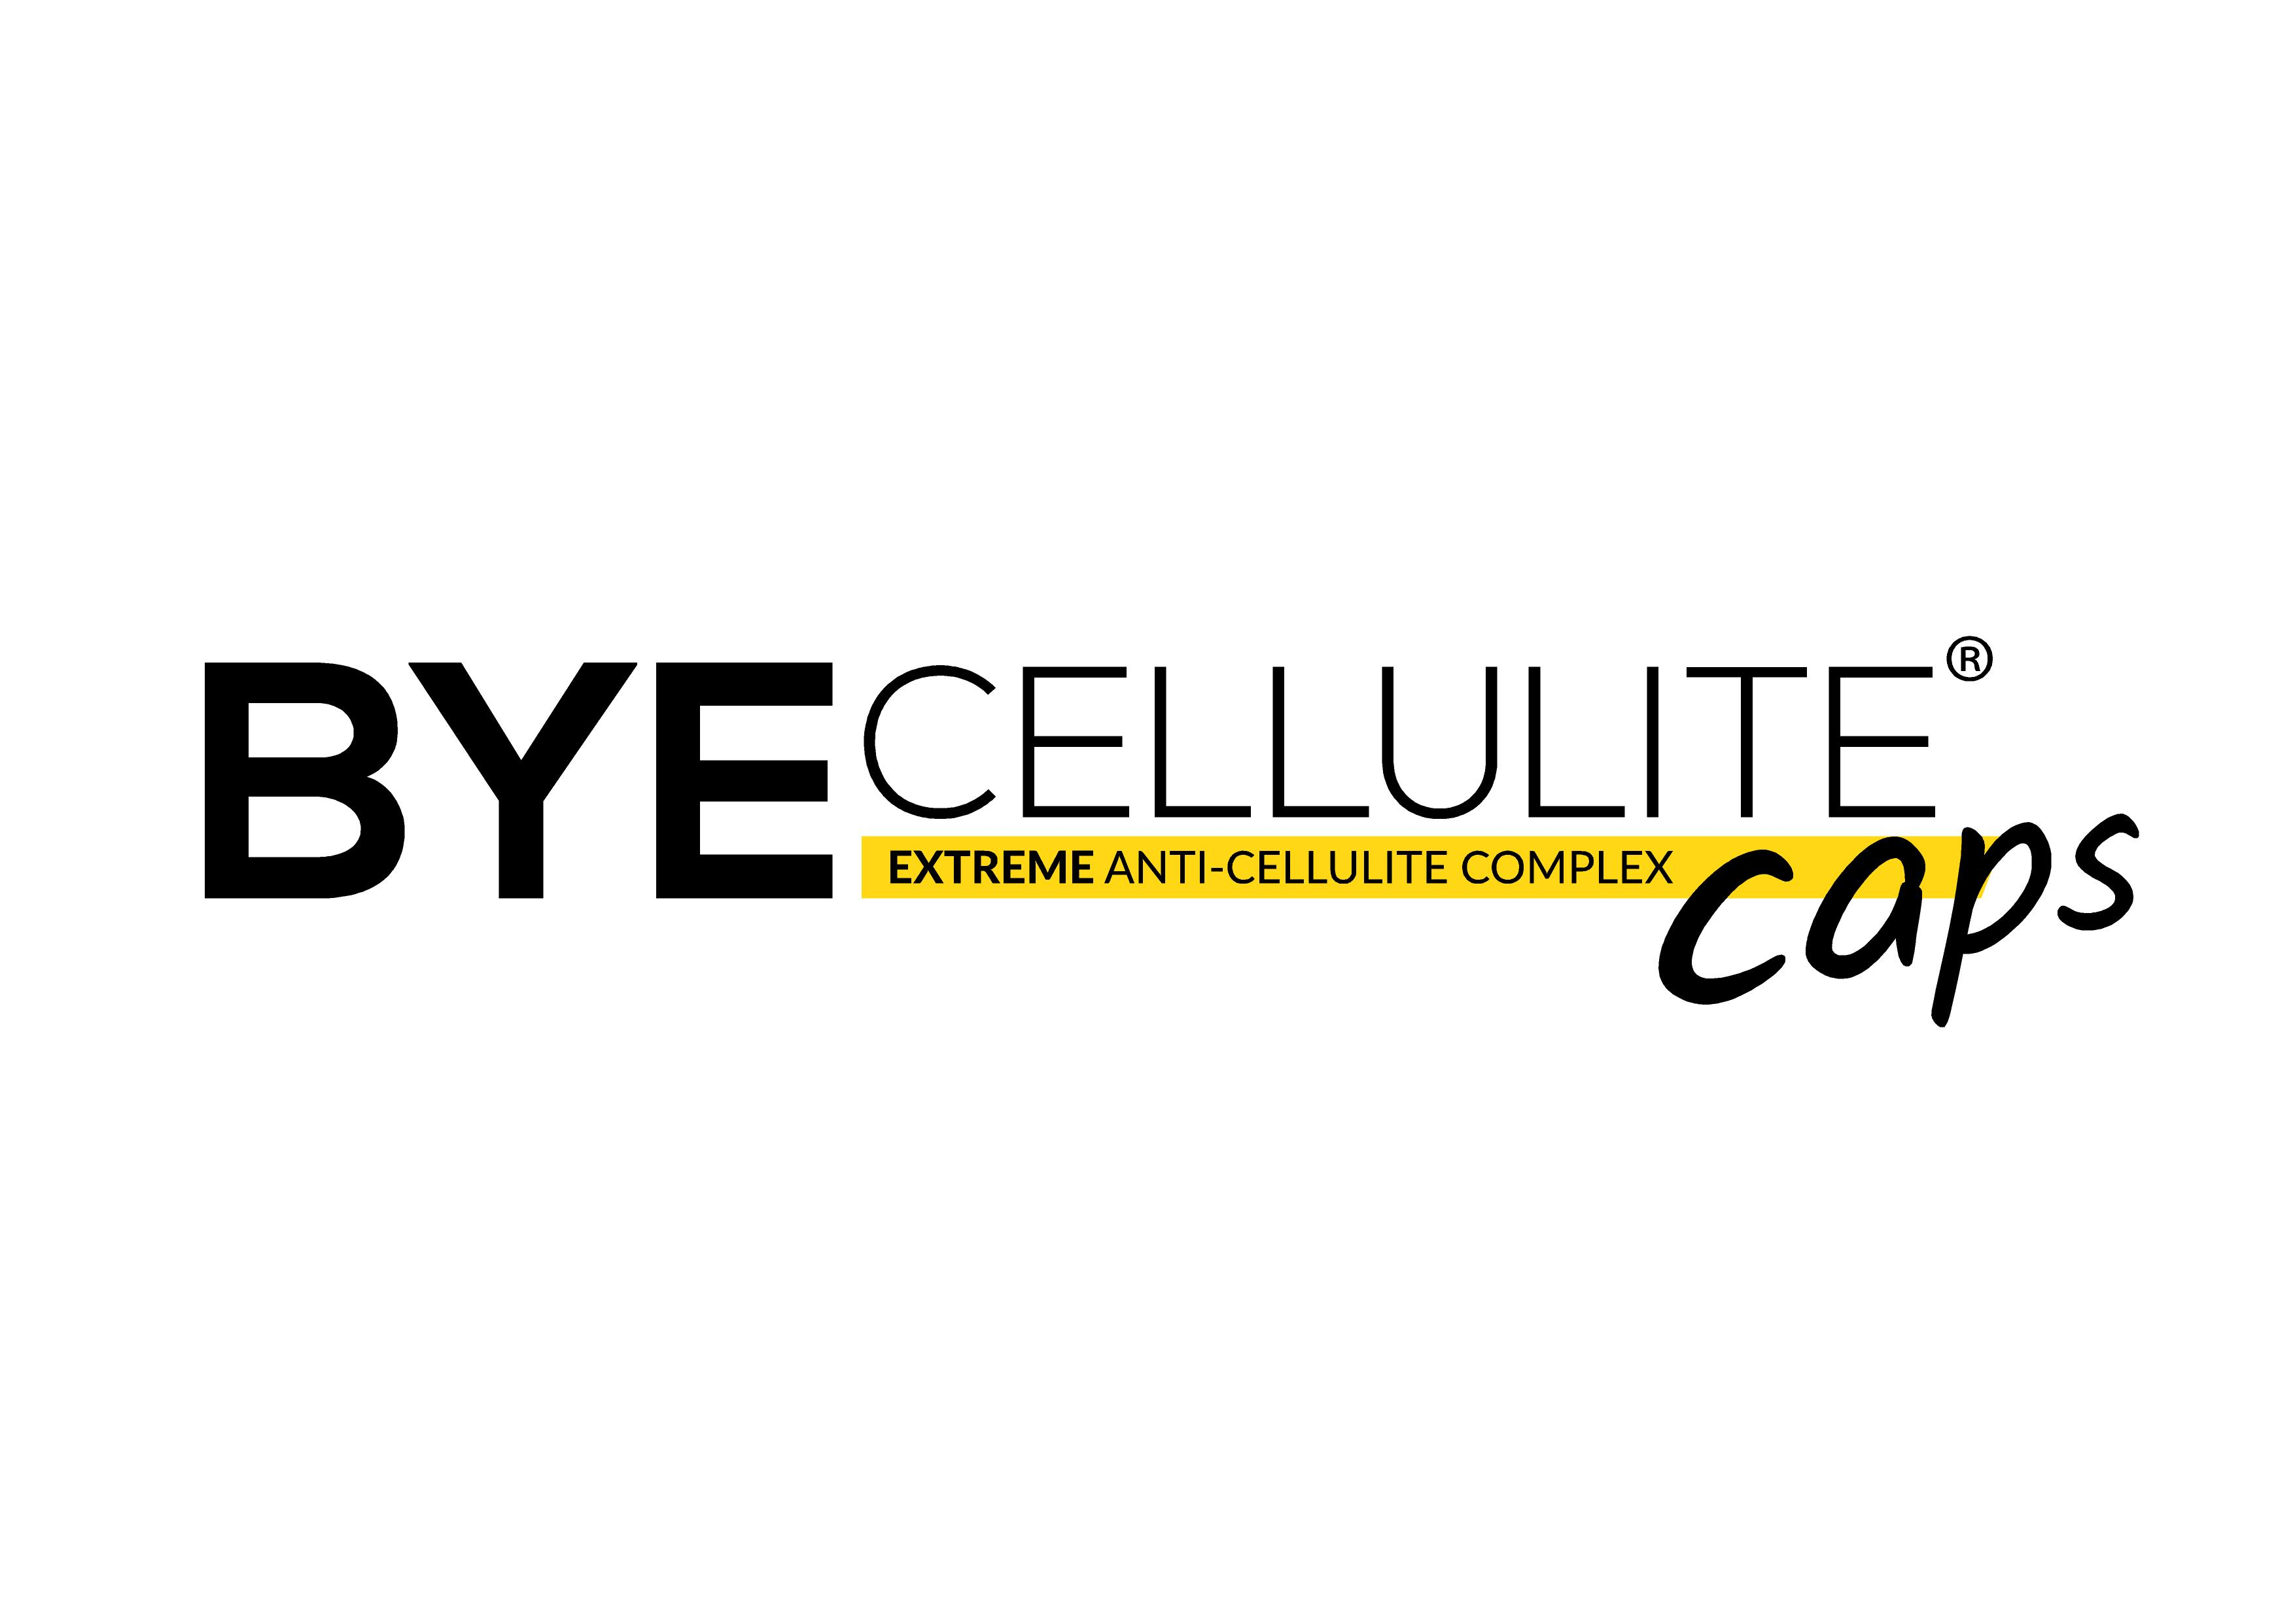 ByeCellulite